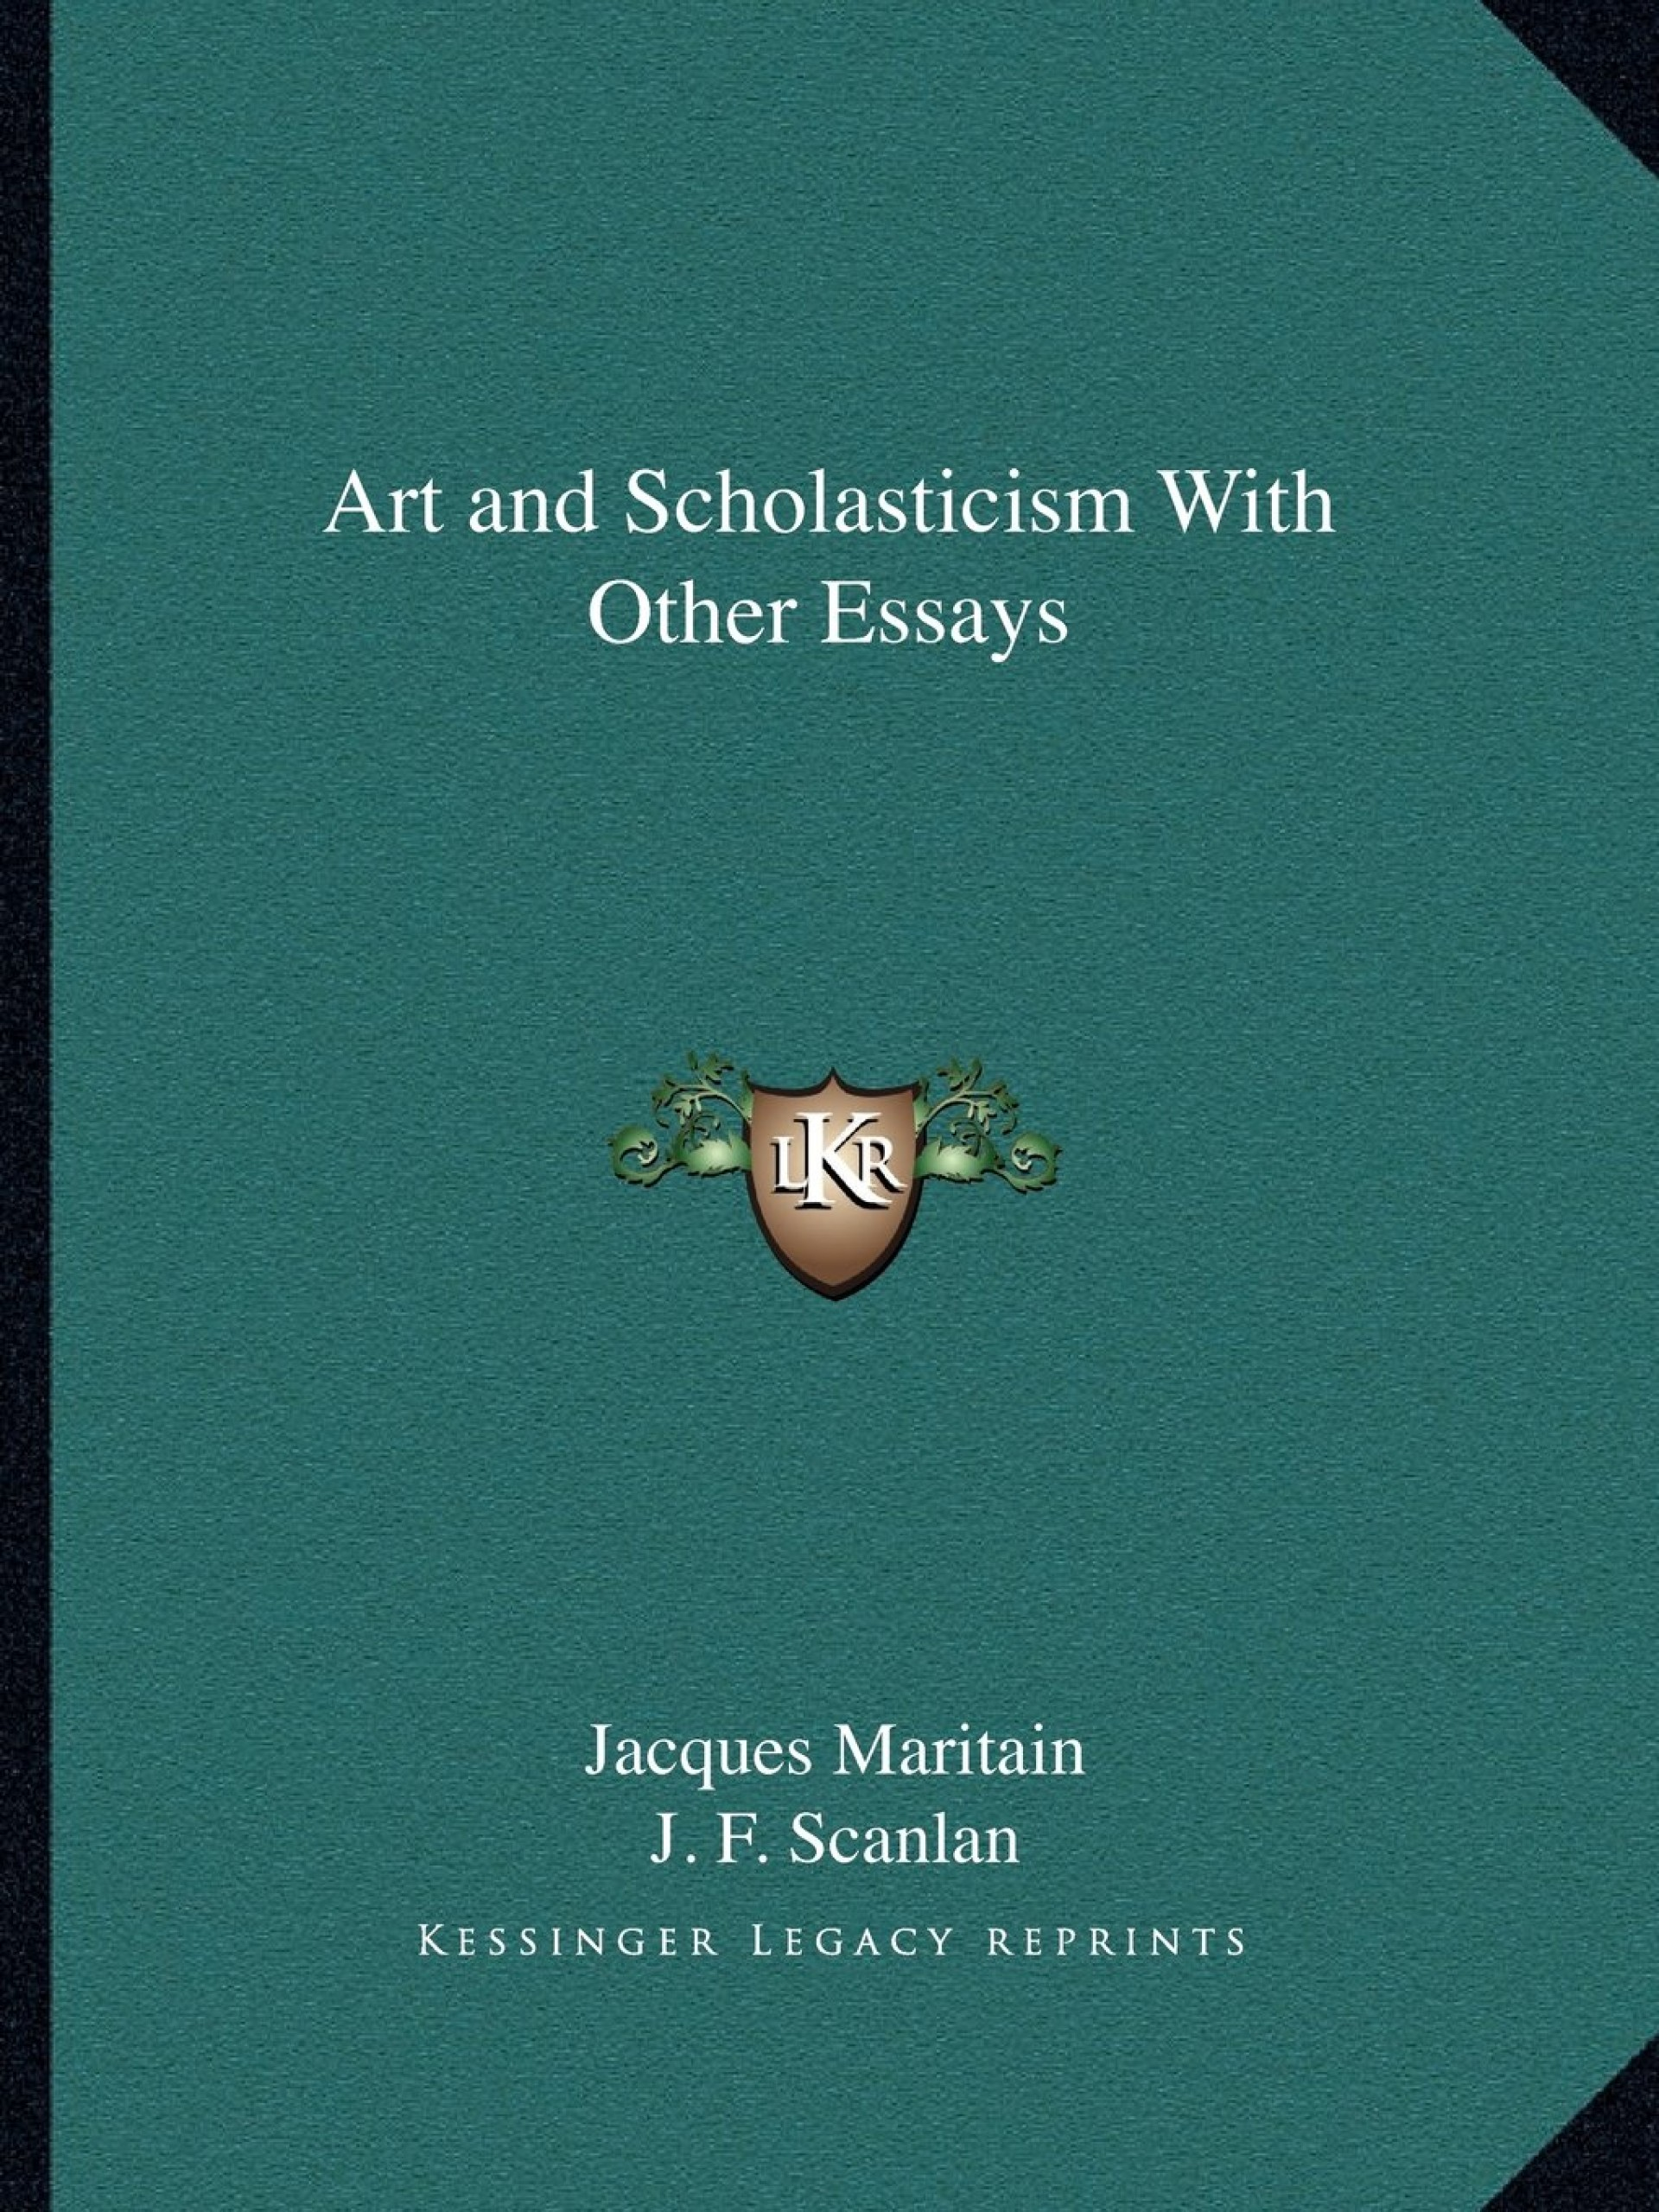 009 Art And Scholasticism With Other Essays Essay Example Impressive 1920